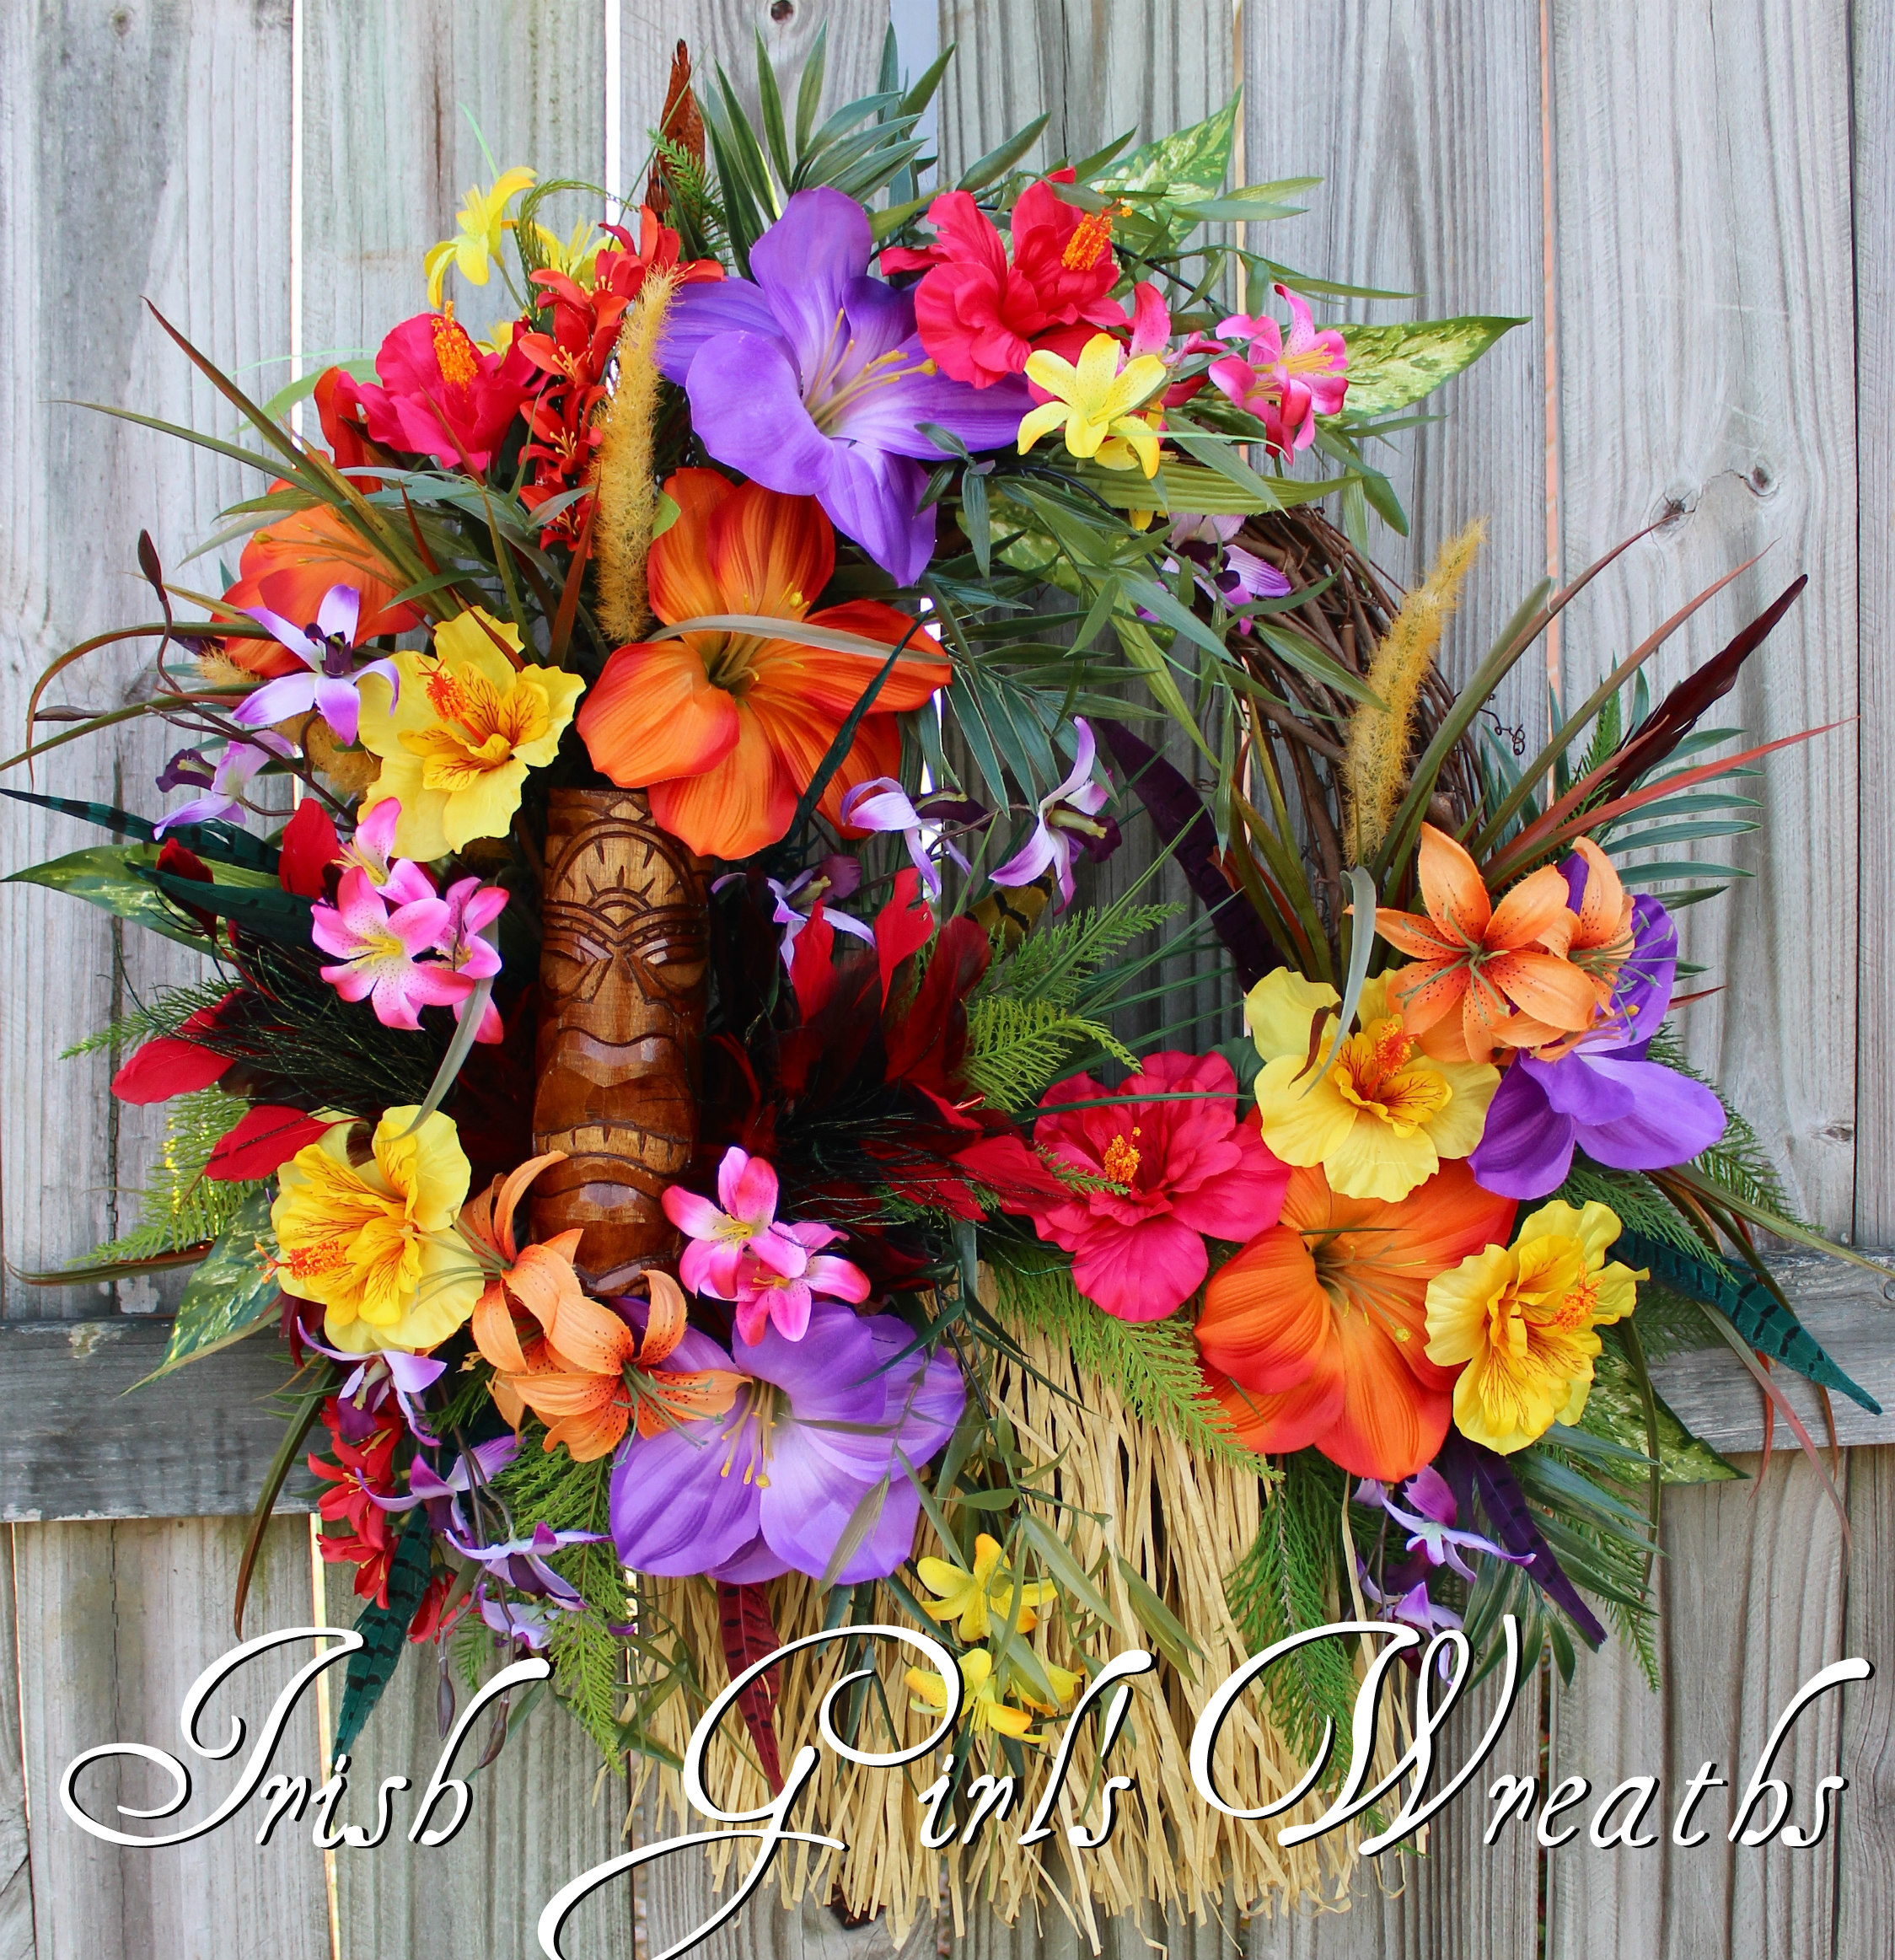 Tiki Island Voodoo Magic Tropical Wreath, Summer Wreath, Hibiscus Wreath, Tiki Totem, Luau